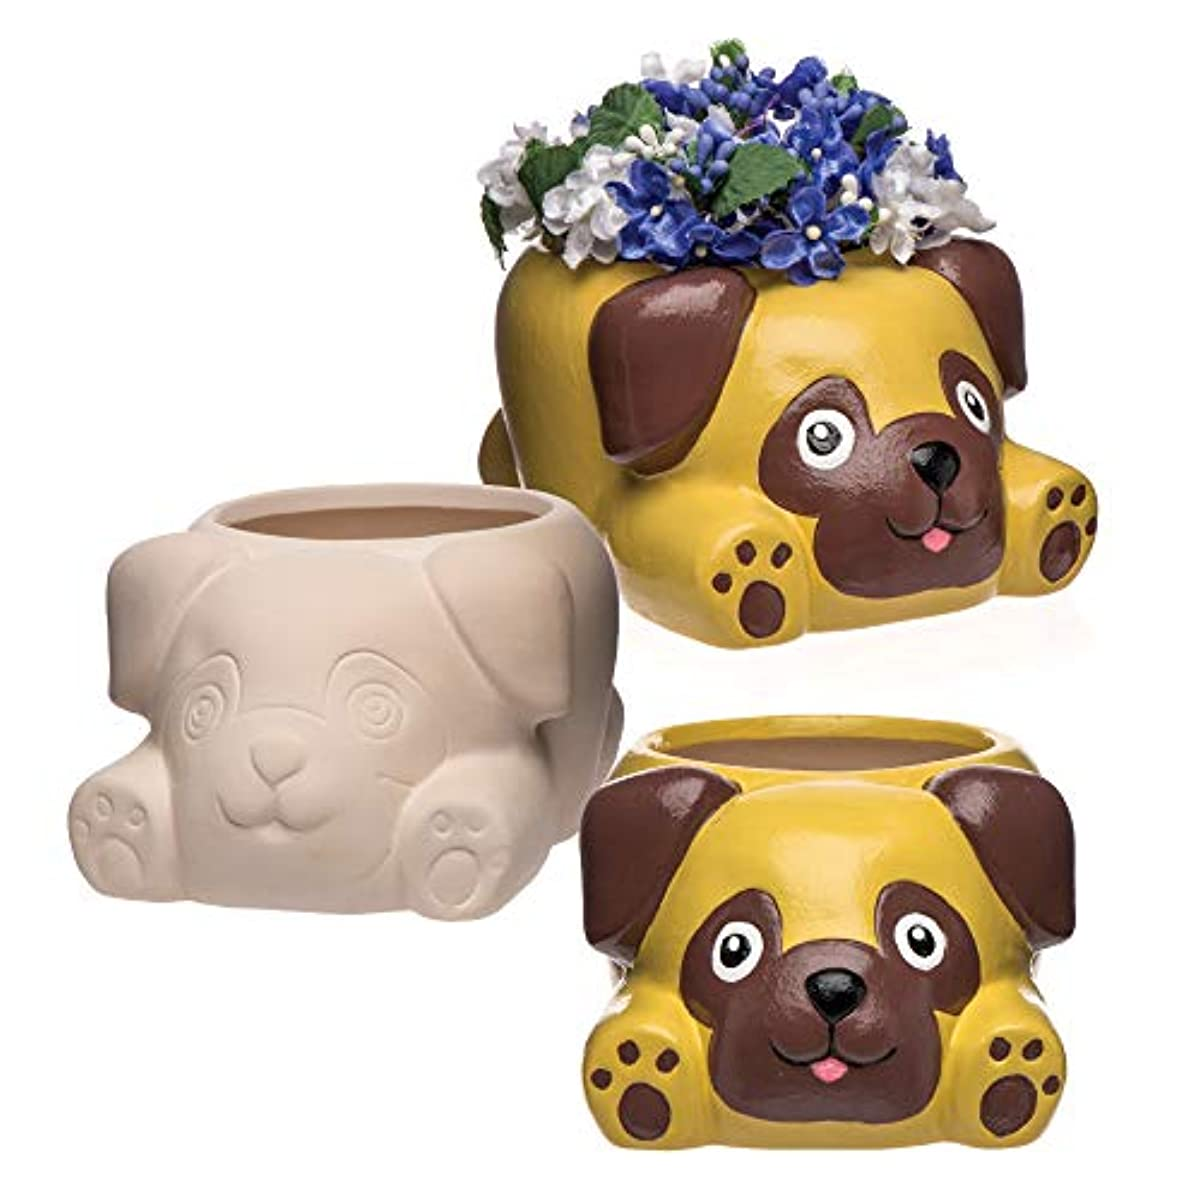 Baker Ross Pug Ceramic Flowerpots (Box of 2) for Kids to Decorate, Personalise and Gift for Mothers Day